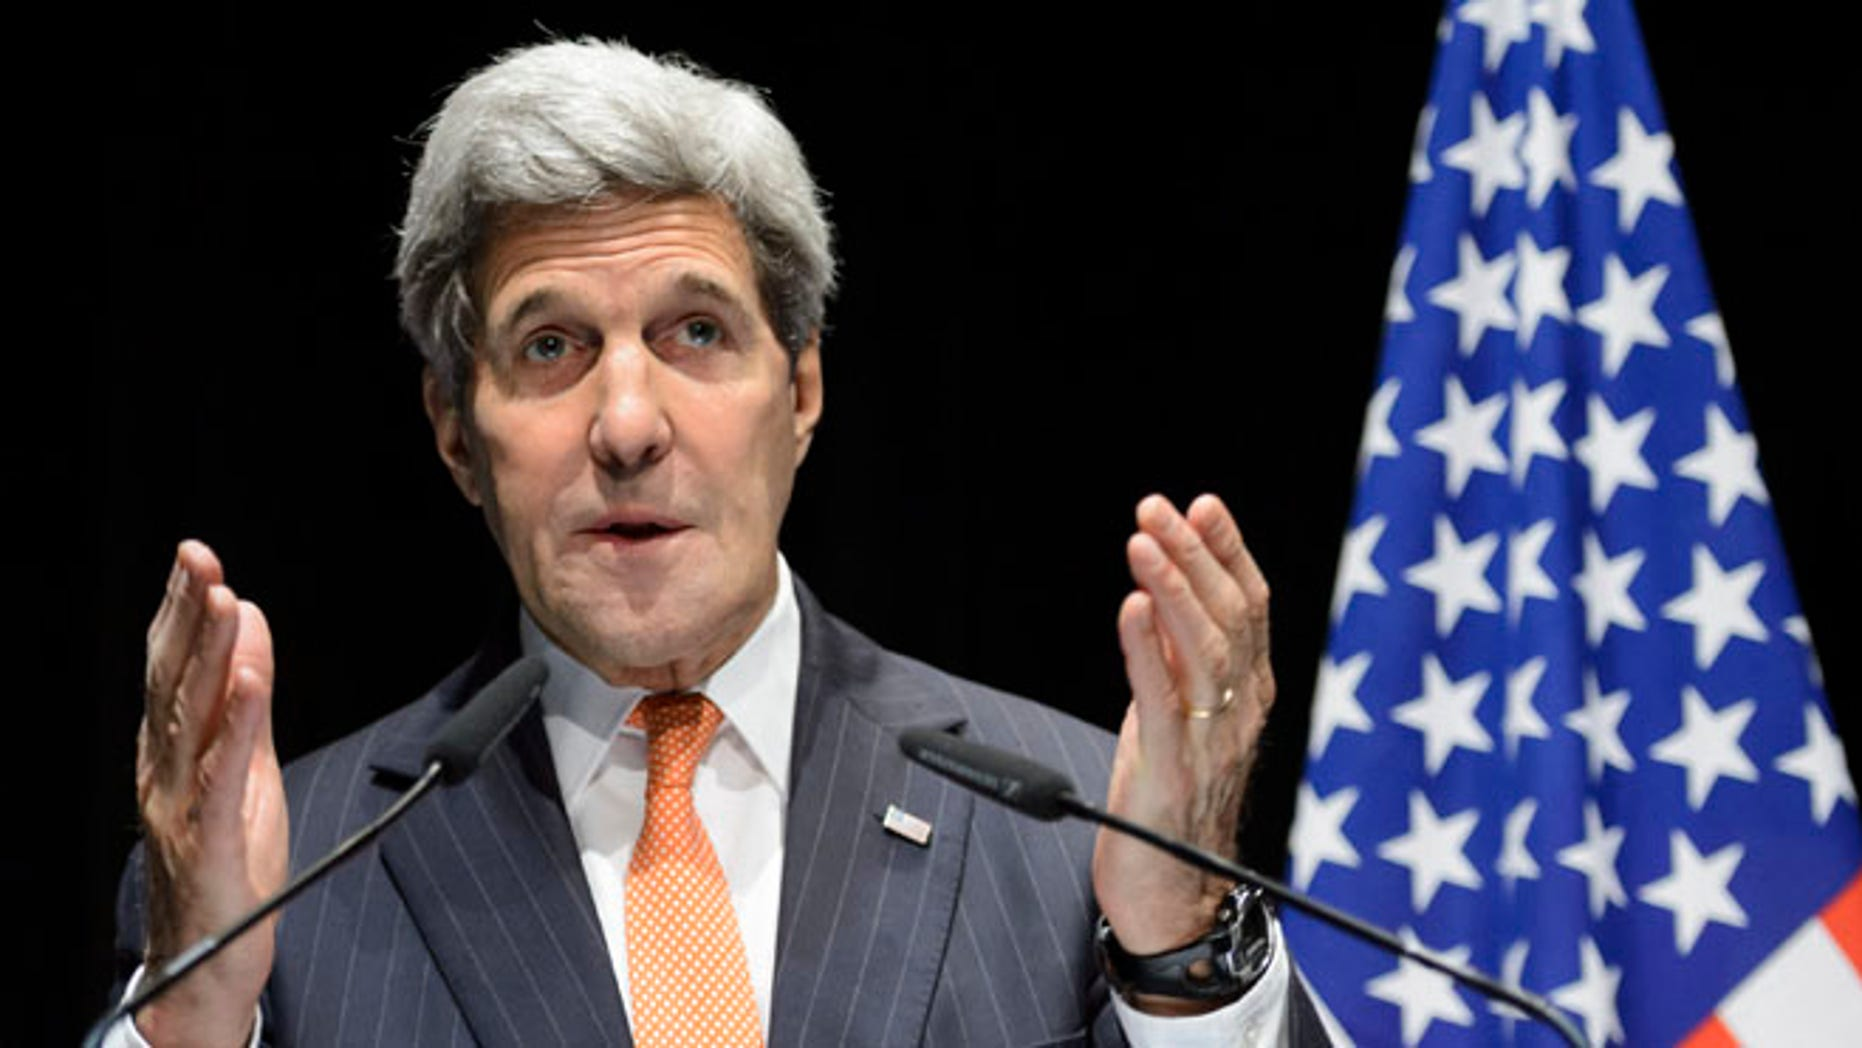 FILE: March 21, 2015: Secretary of State John Kerry at a  news conference after bilateral meetings with Iranian Foreign Minister Mohammad Javad Zarif  about  Iran's nuclear program, in Lausanne, Switzerland.